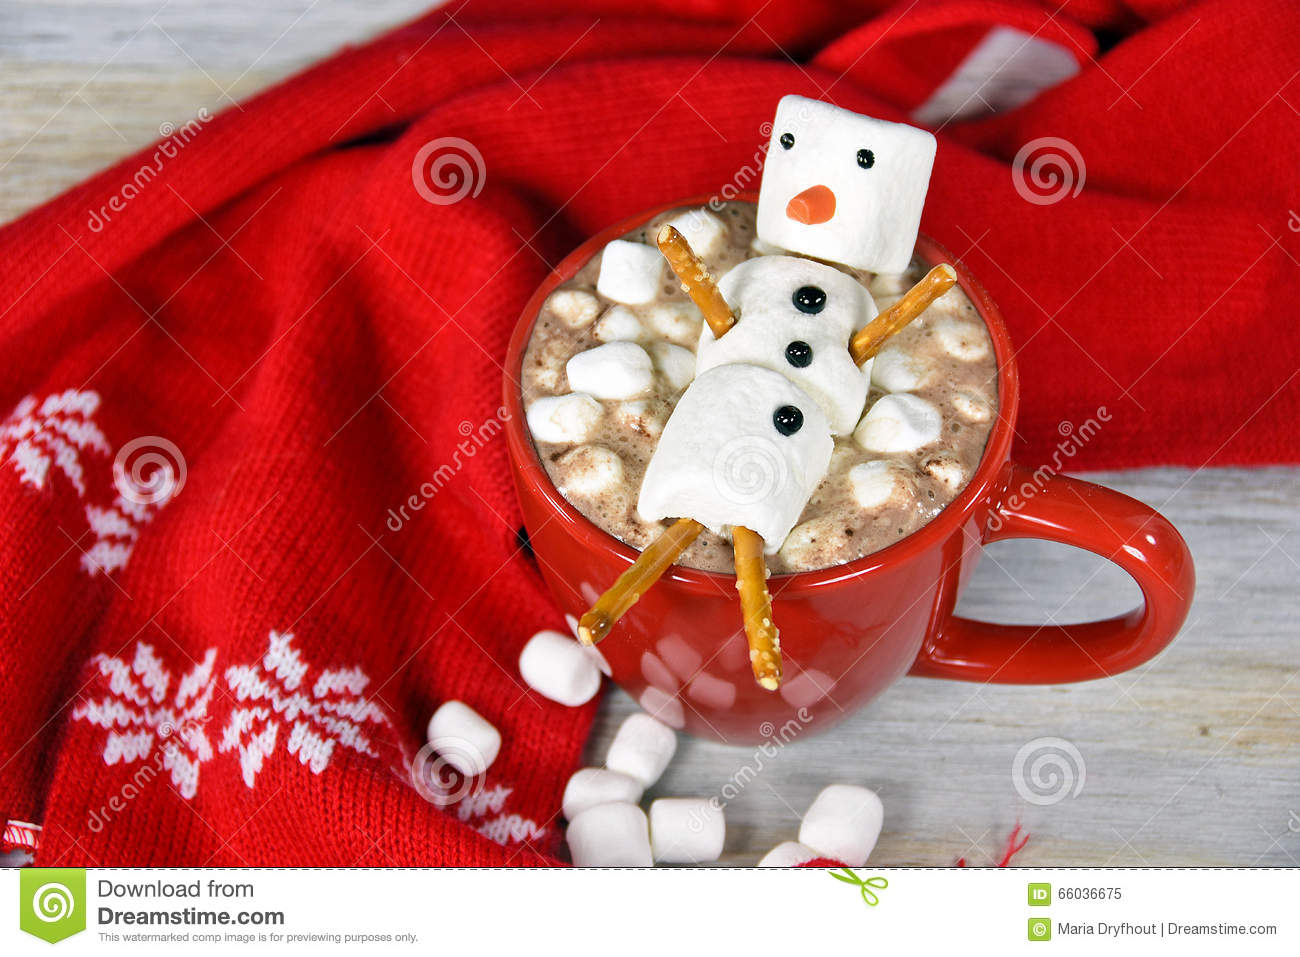 Hot chocolate drink with marshmallow snowman